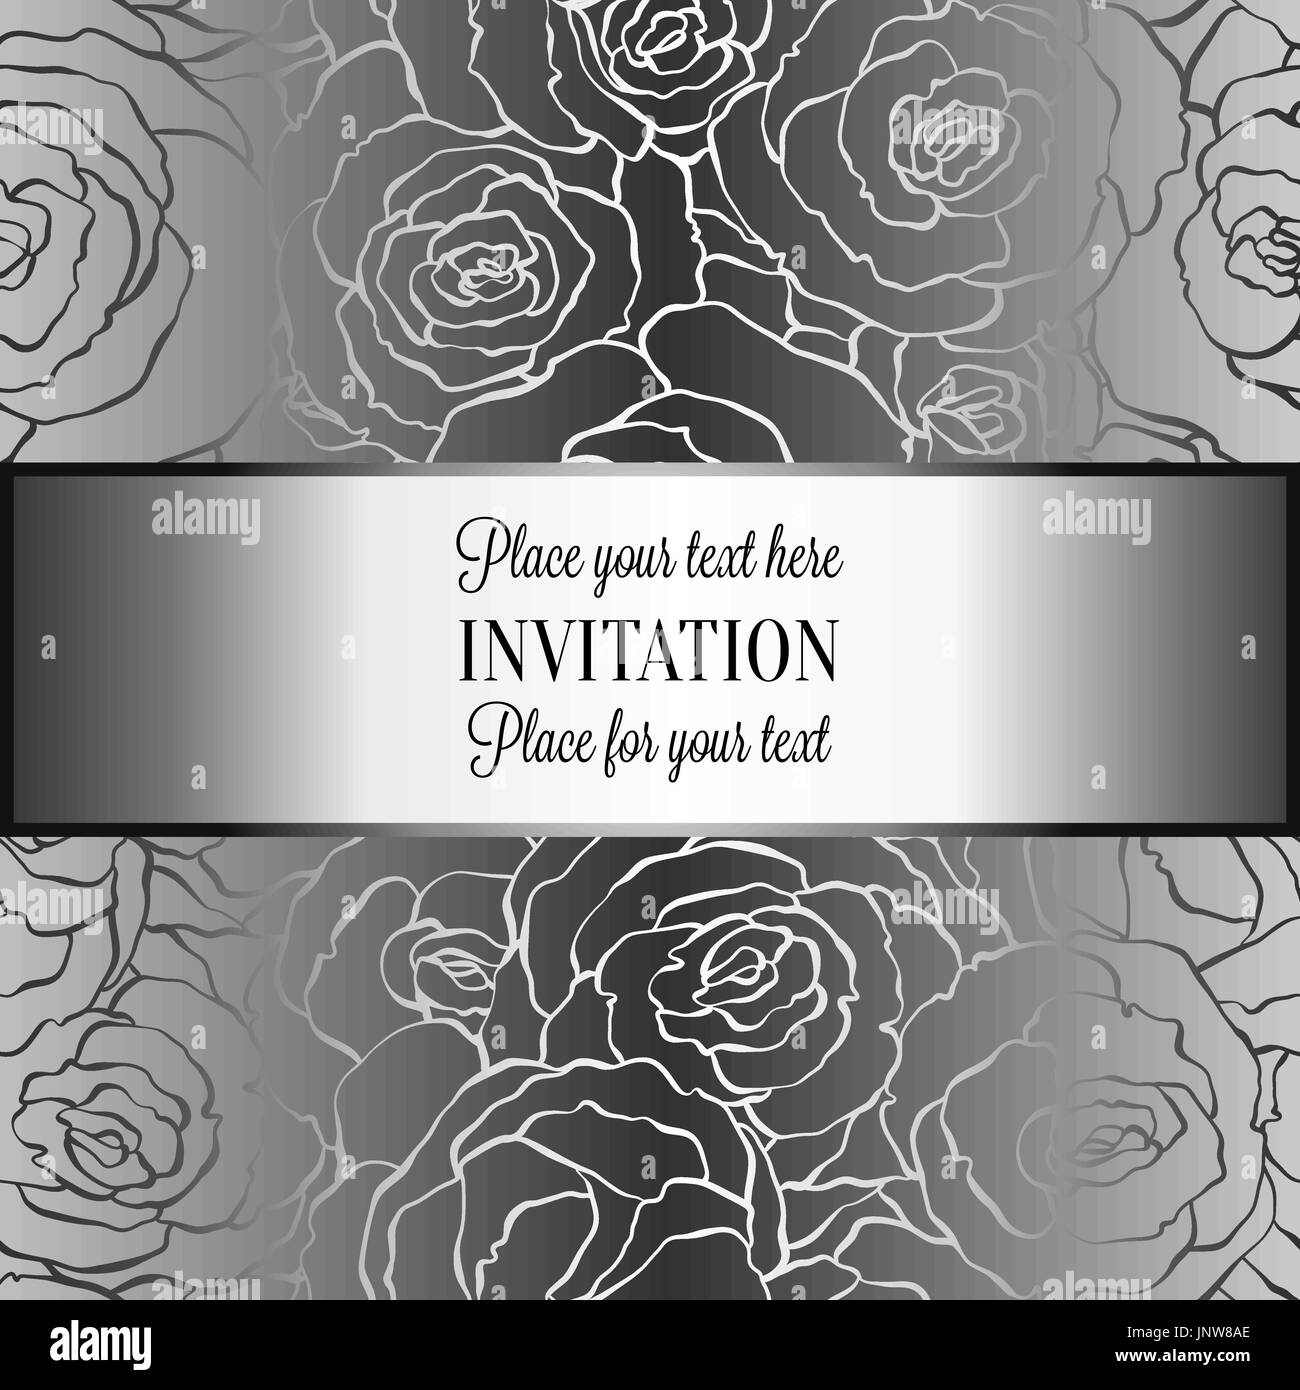 Abstract Background With Roses Luxury Metal Silver Vintage Tracery Made Of Damask Floral Wallpaper Ornaments Invitation Card Baroque Style B